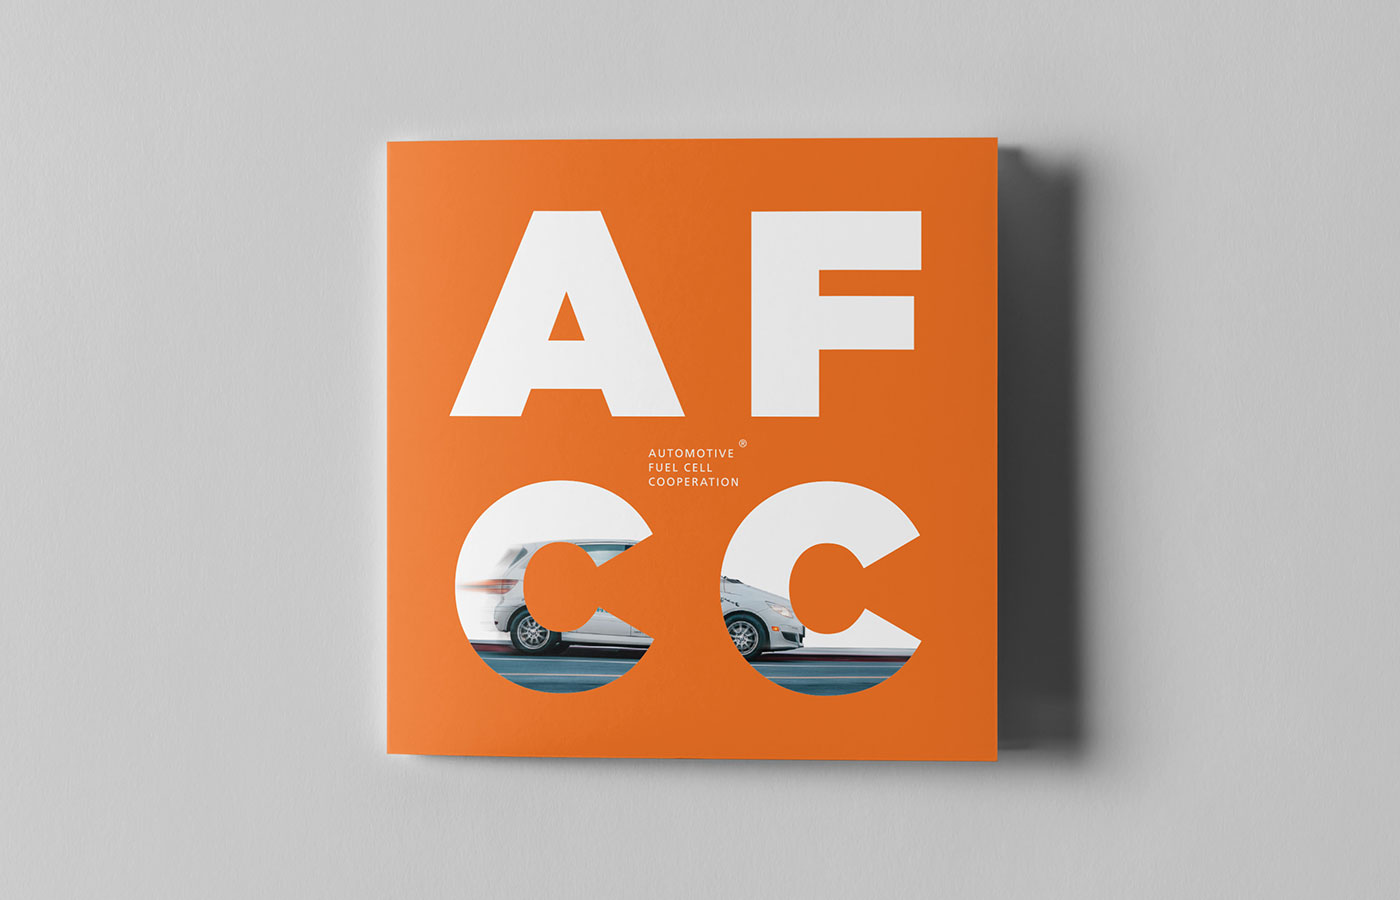 covetdesign_logo-design_branding_package-design_graphic-designer_vancouver_work_wide_afcc-1